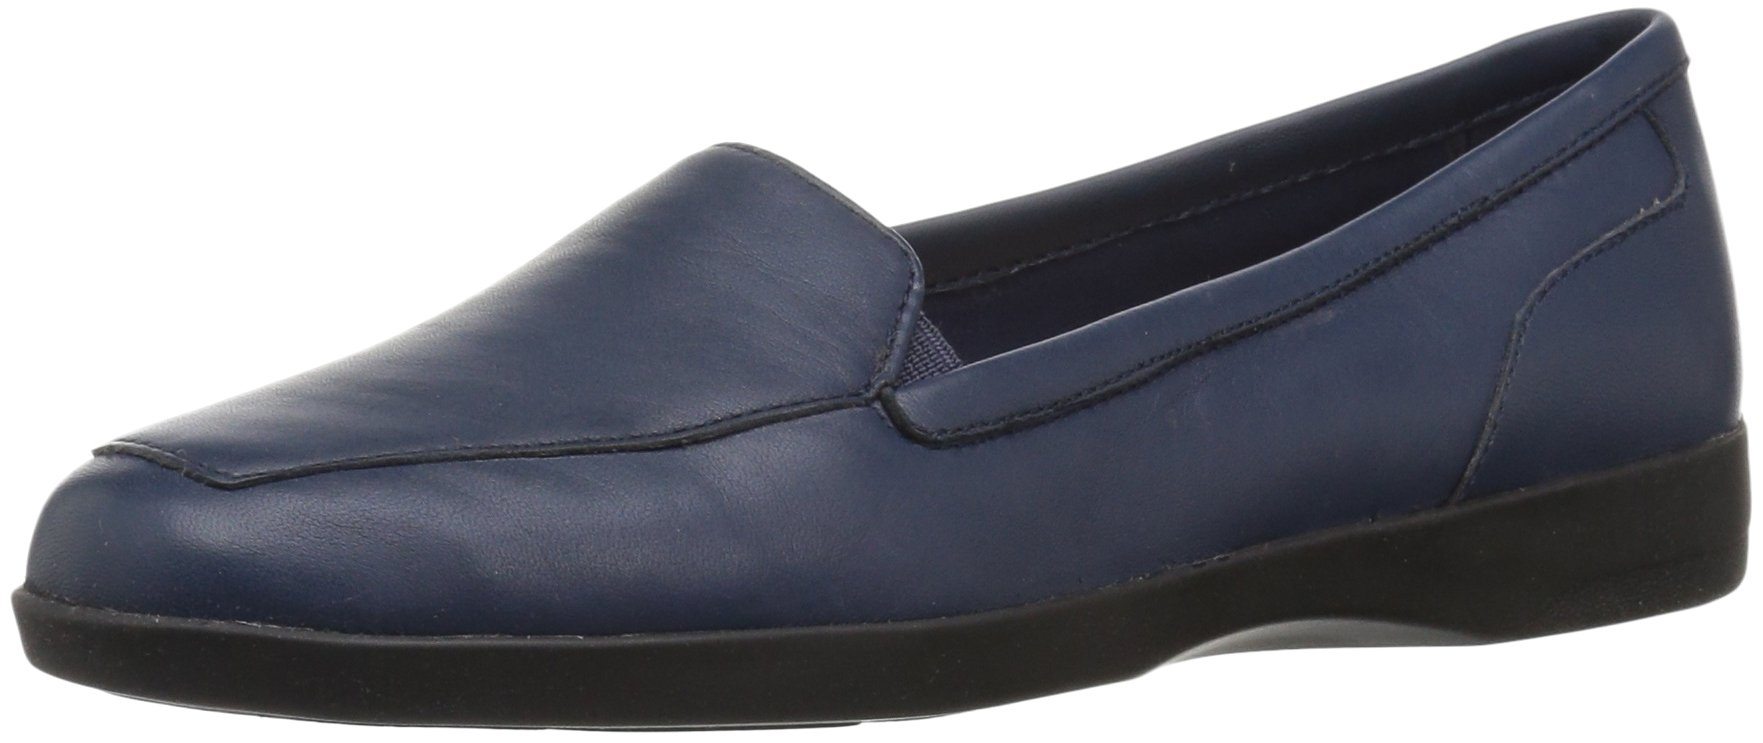 Easy Spirit Women's Devitt Oxford Flat, Blue, 5 M US by Easy Spirit (Image #1)